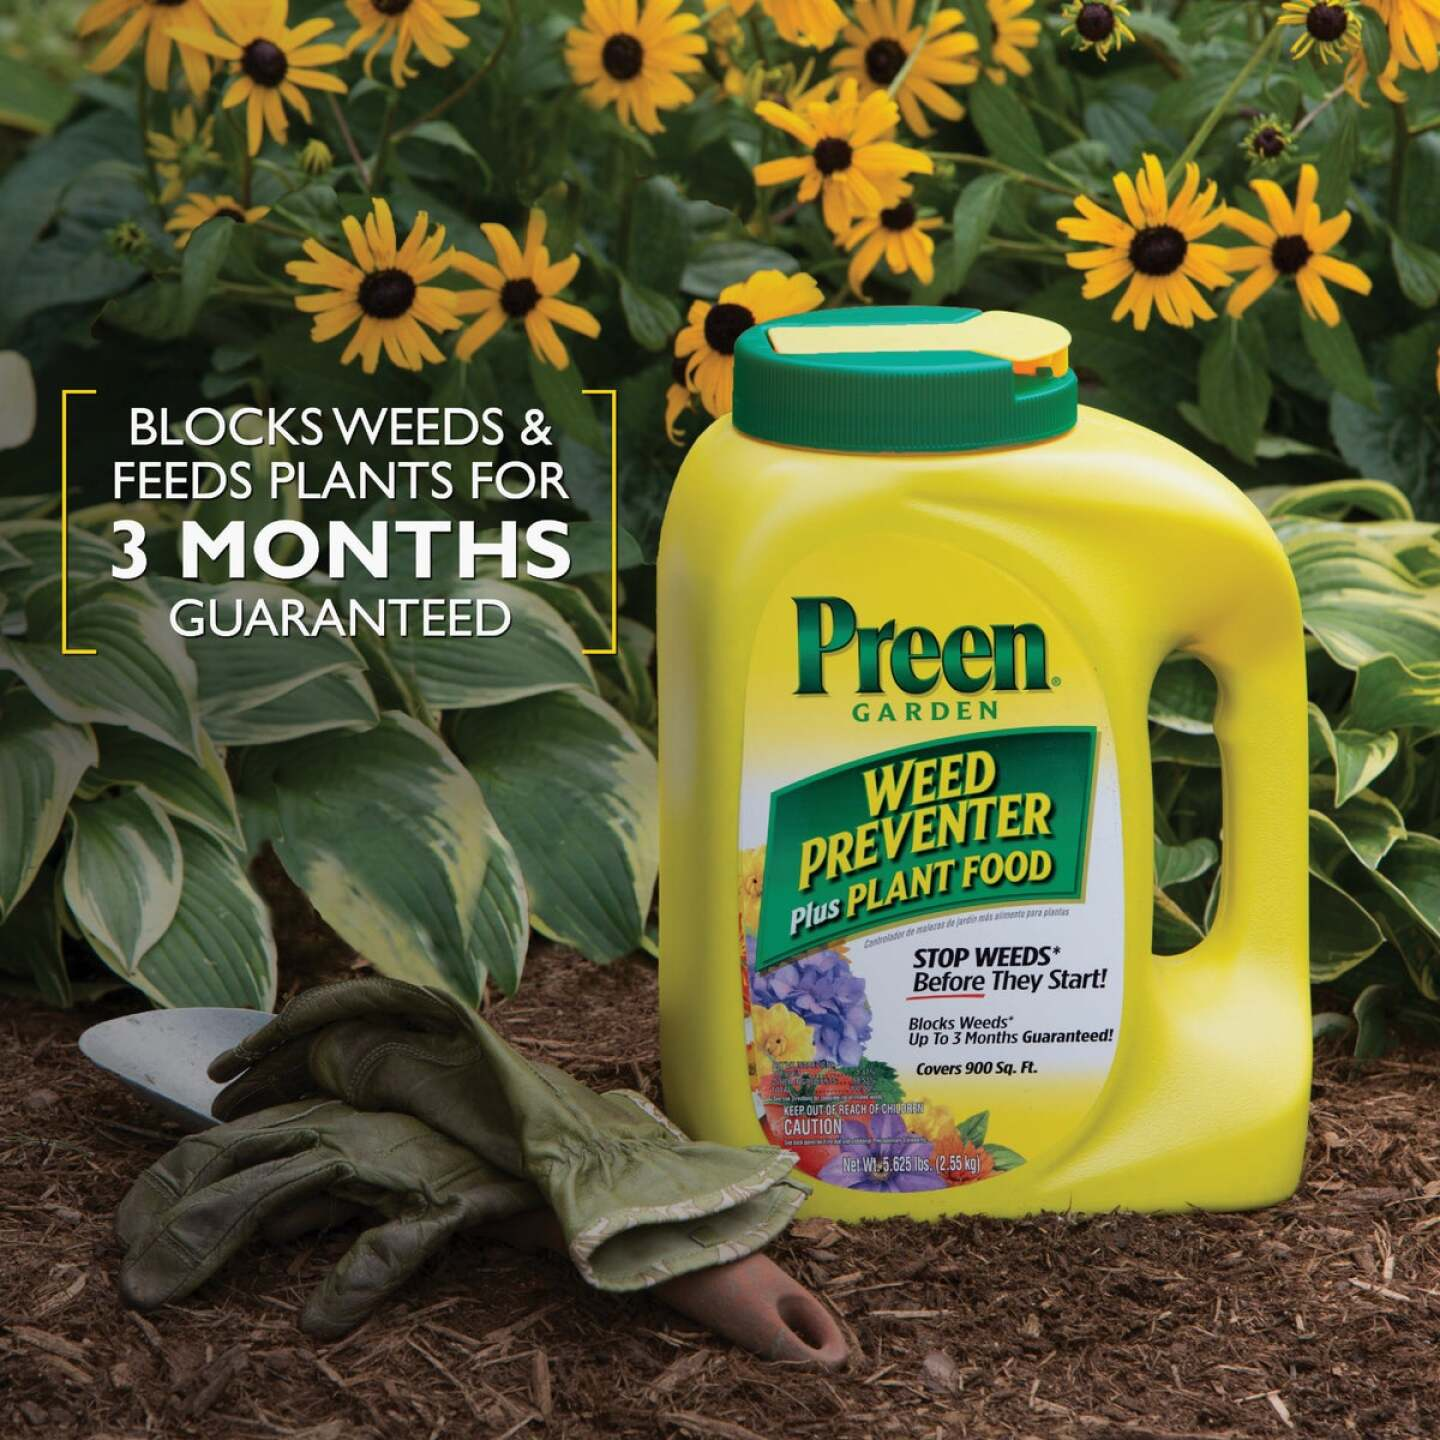 Preen 5.625 Lb. Ready To Use Granules Garden Weed Preventer Plus Plant Food Image 3